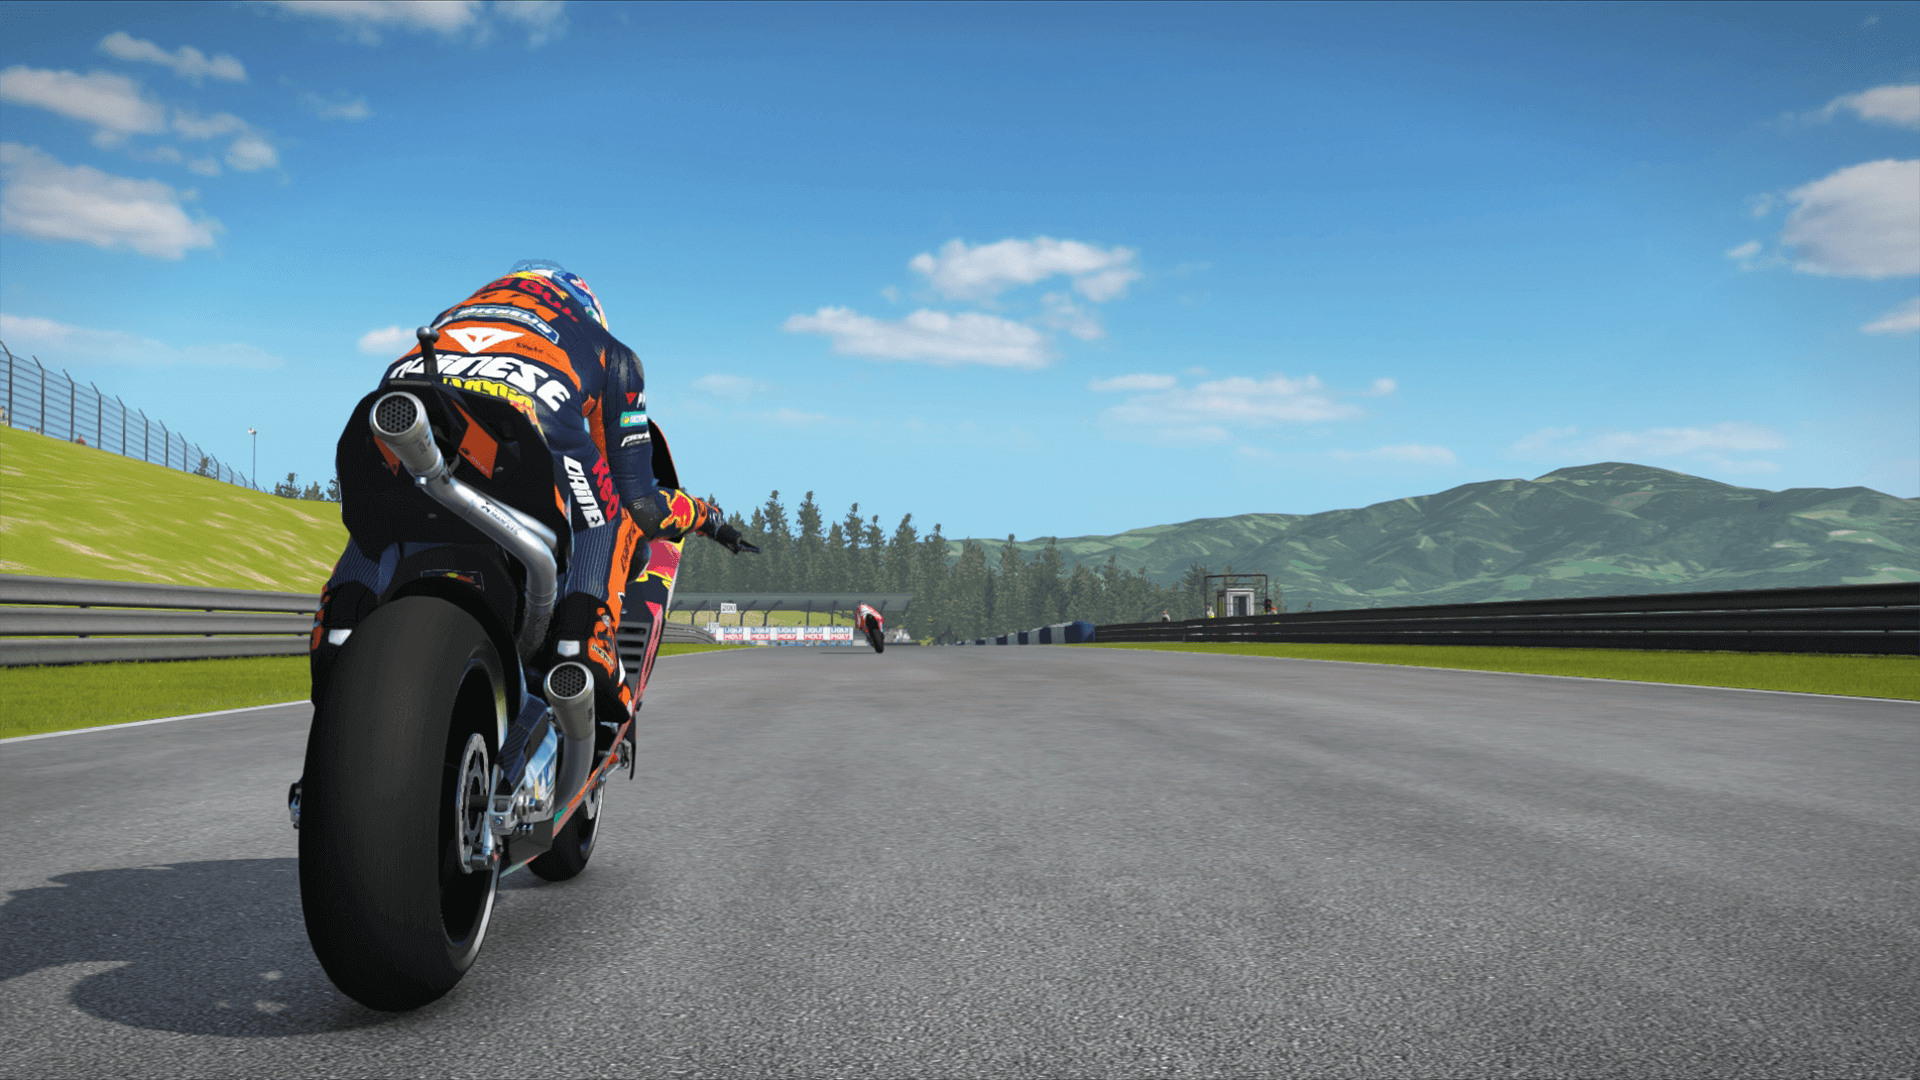 Demo Lap: Pol Espargaró at Red Bull Ring on MotoGP17